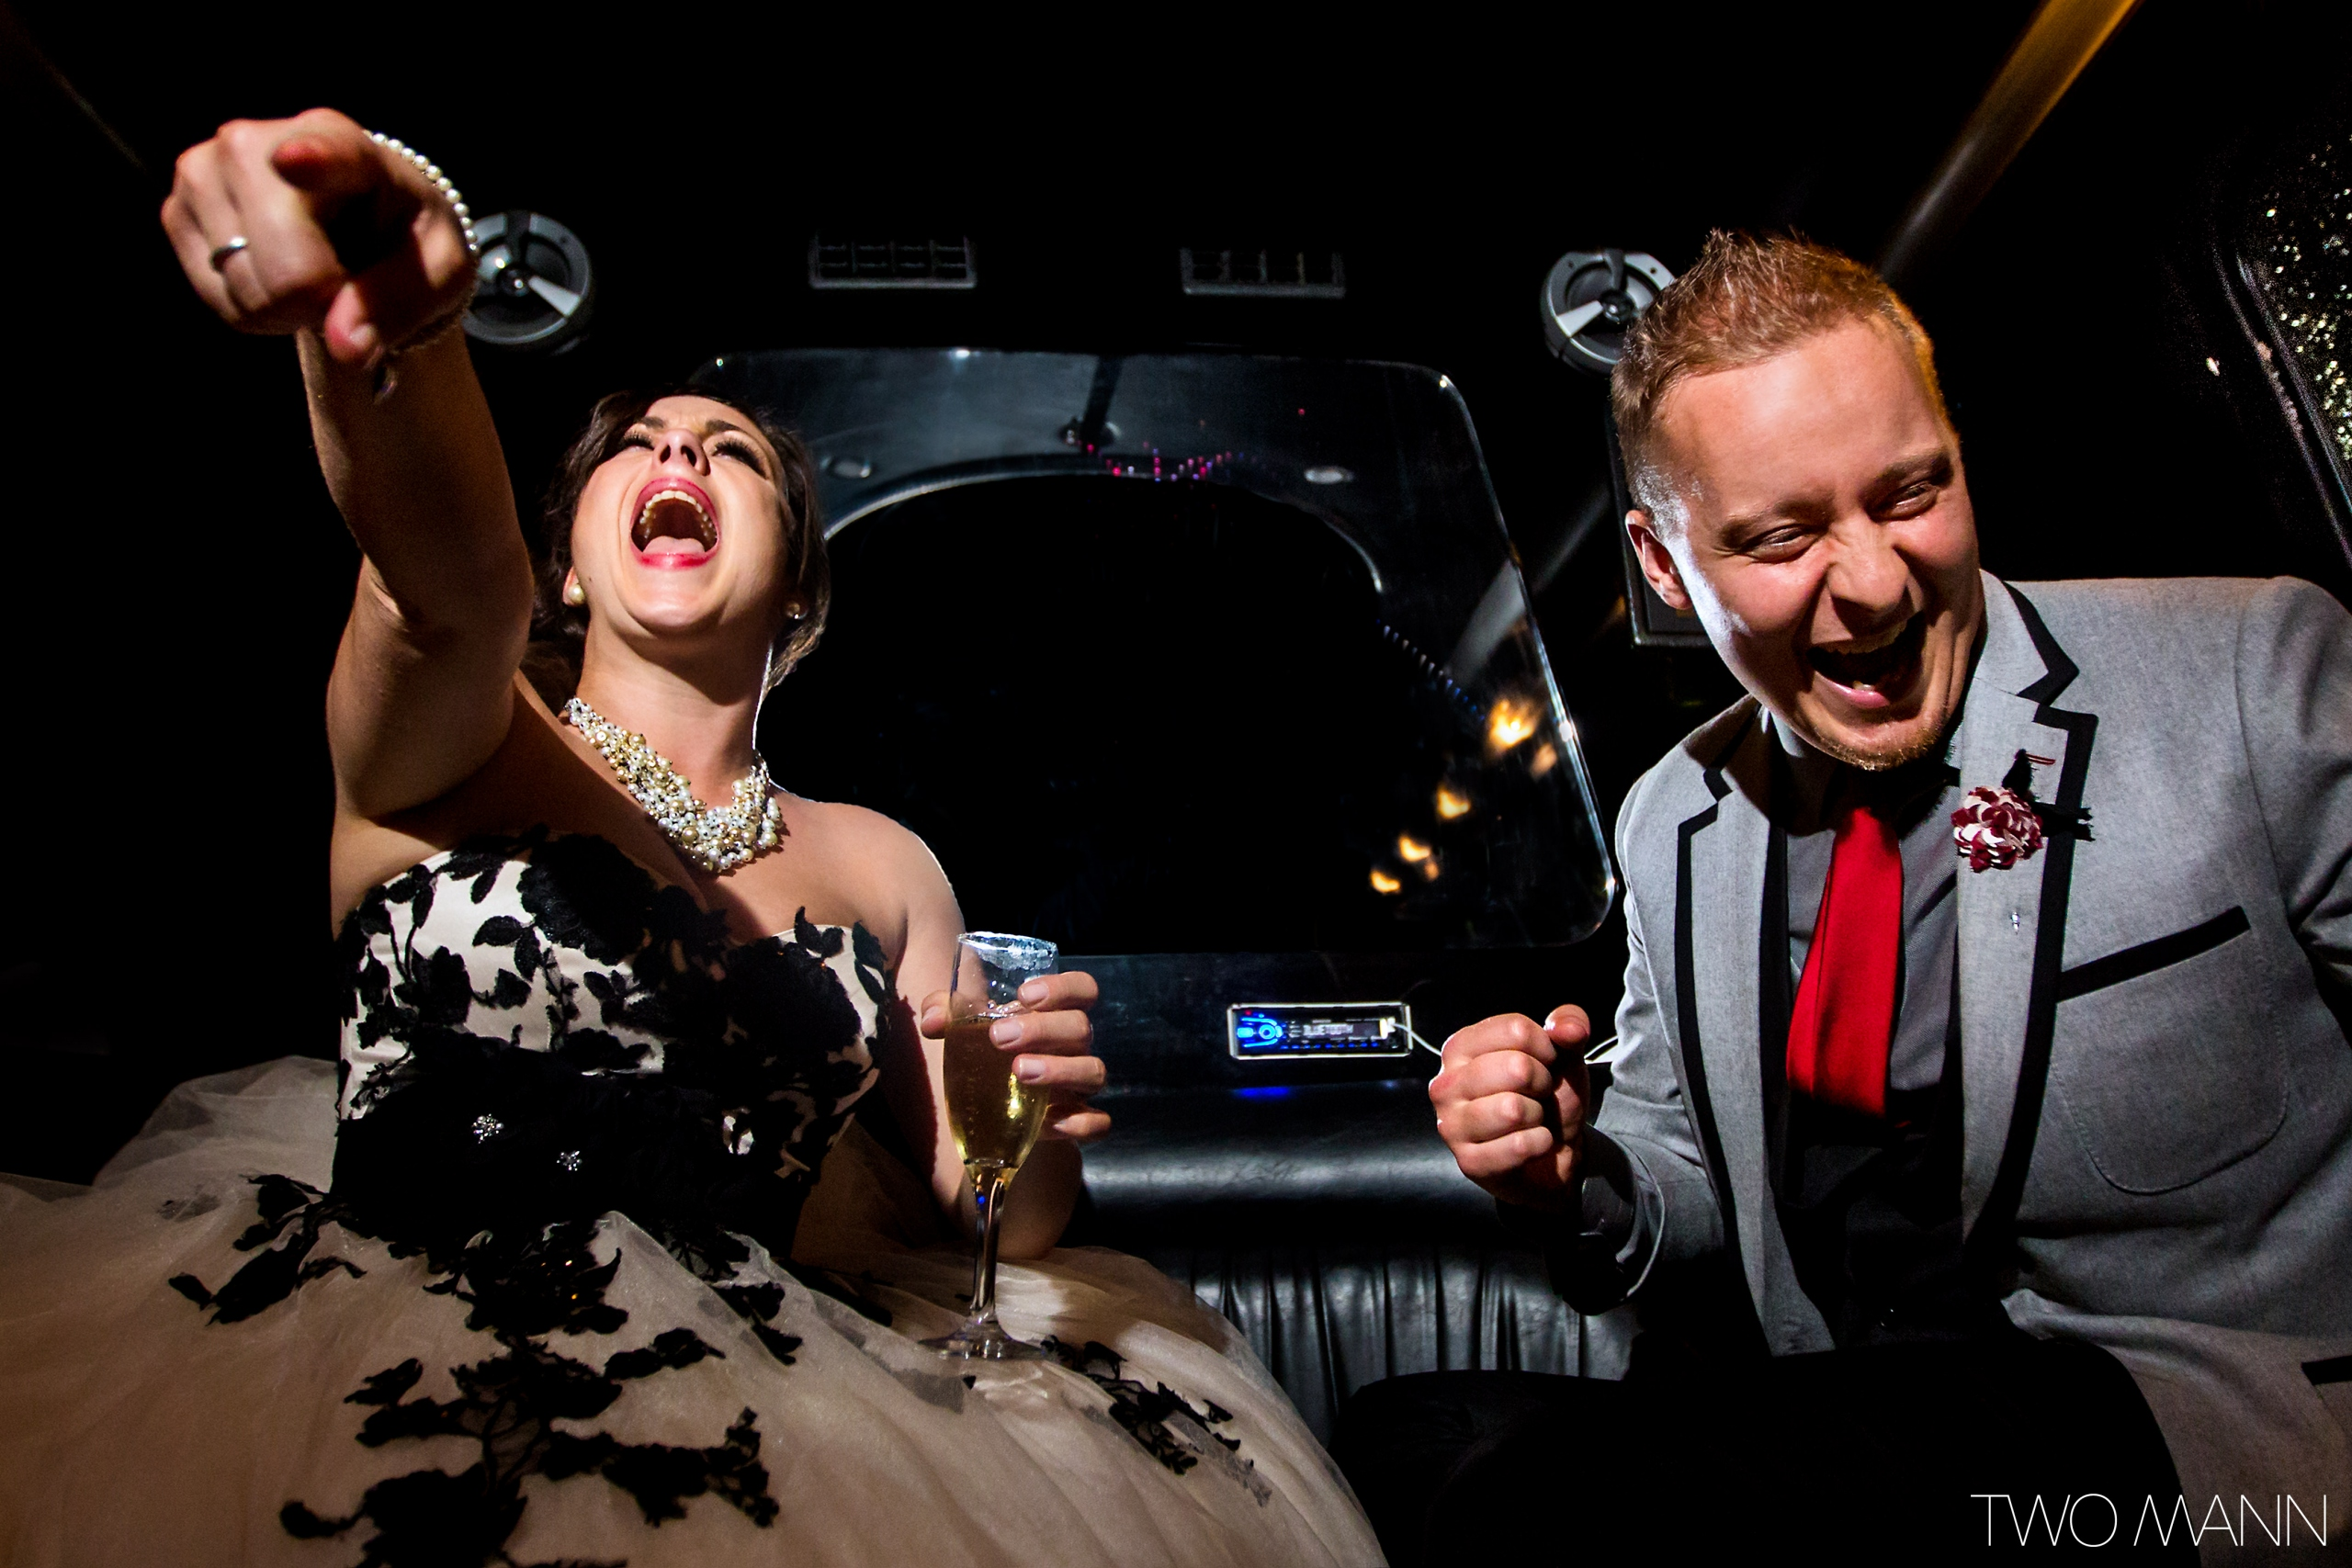 newlyweds' intimate wedding celebration in a limo